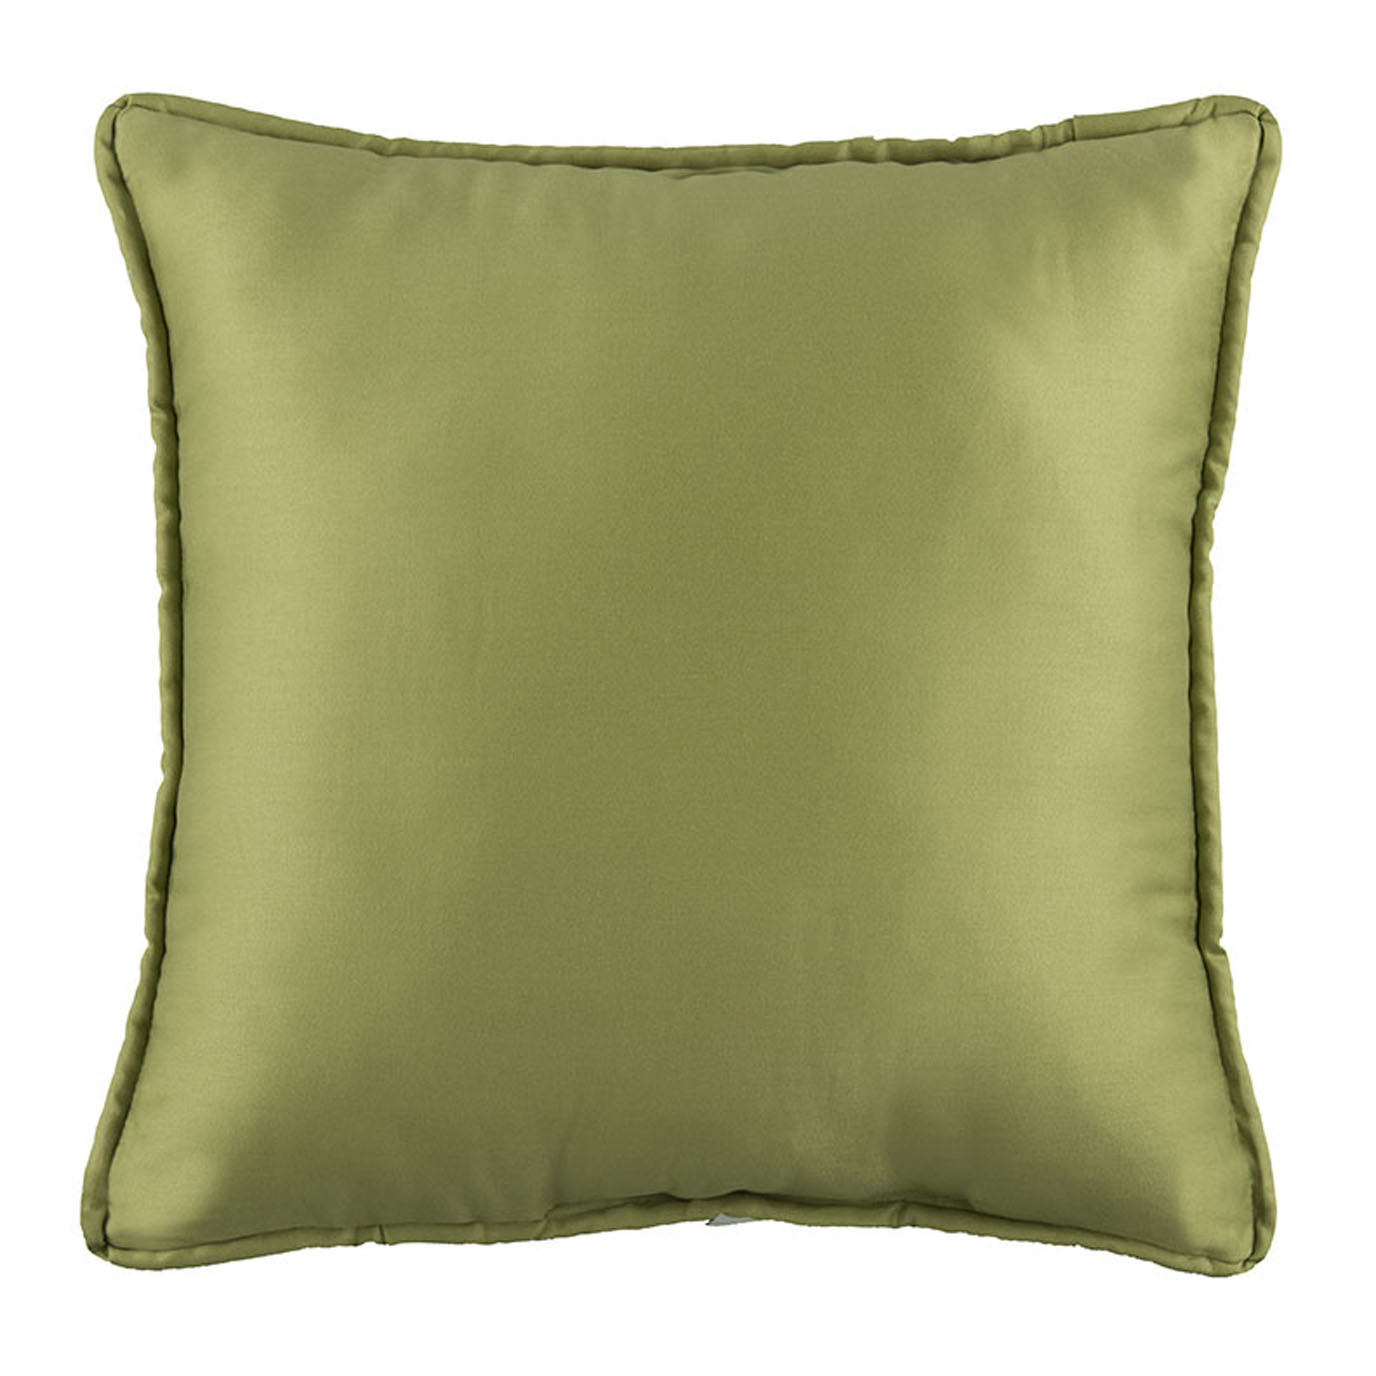 Hepworth Green Square Pillow